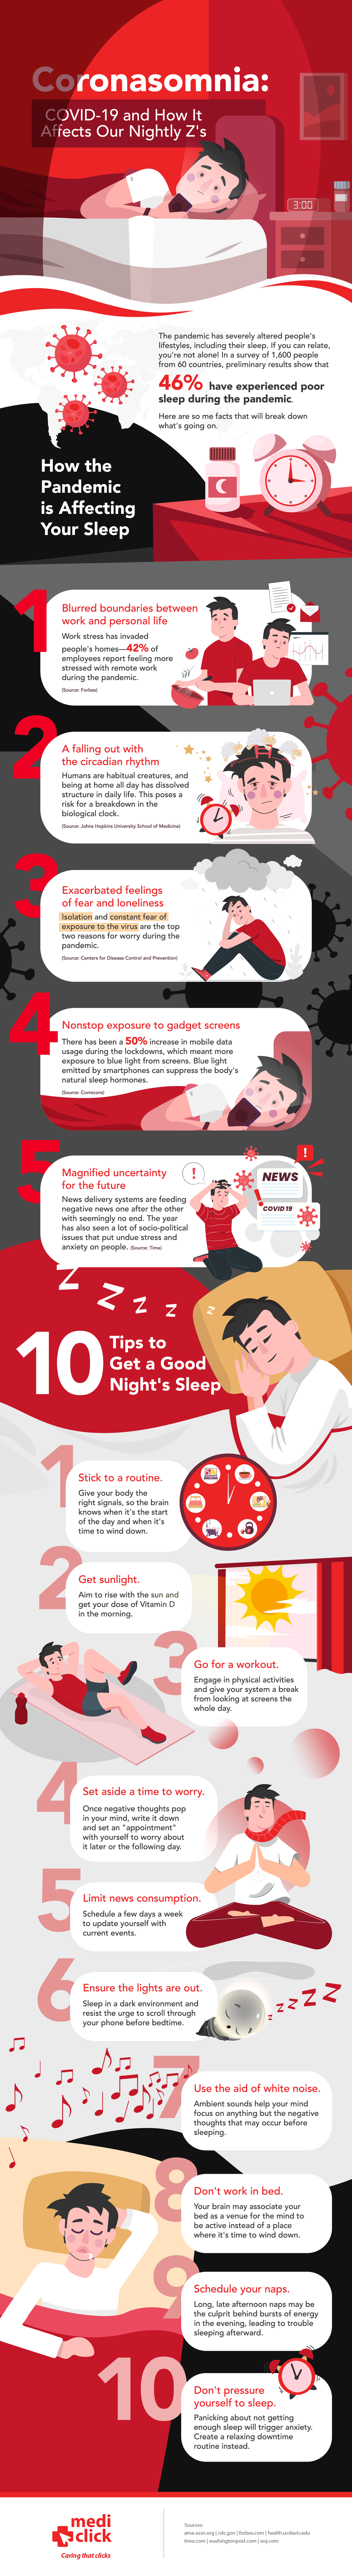 Infographic on Coronasomnia and How COVID-19 Affects Our Sleep